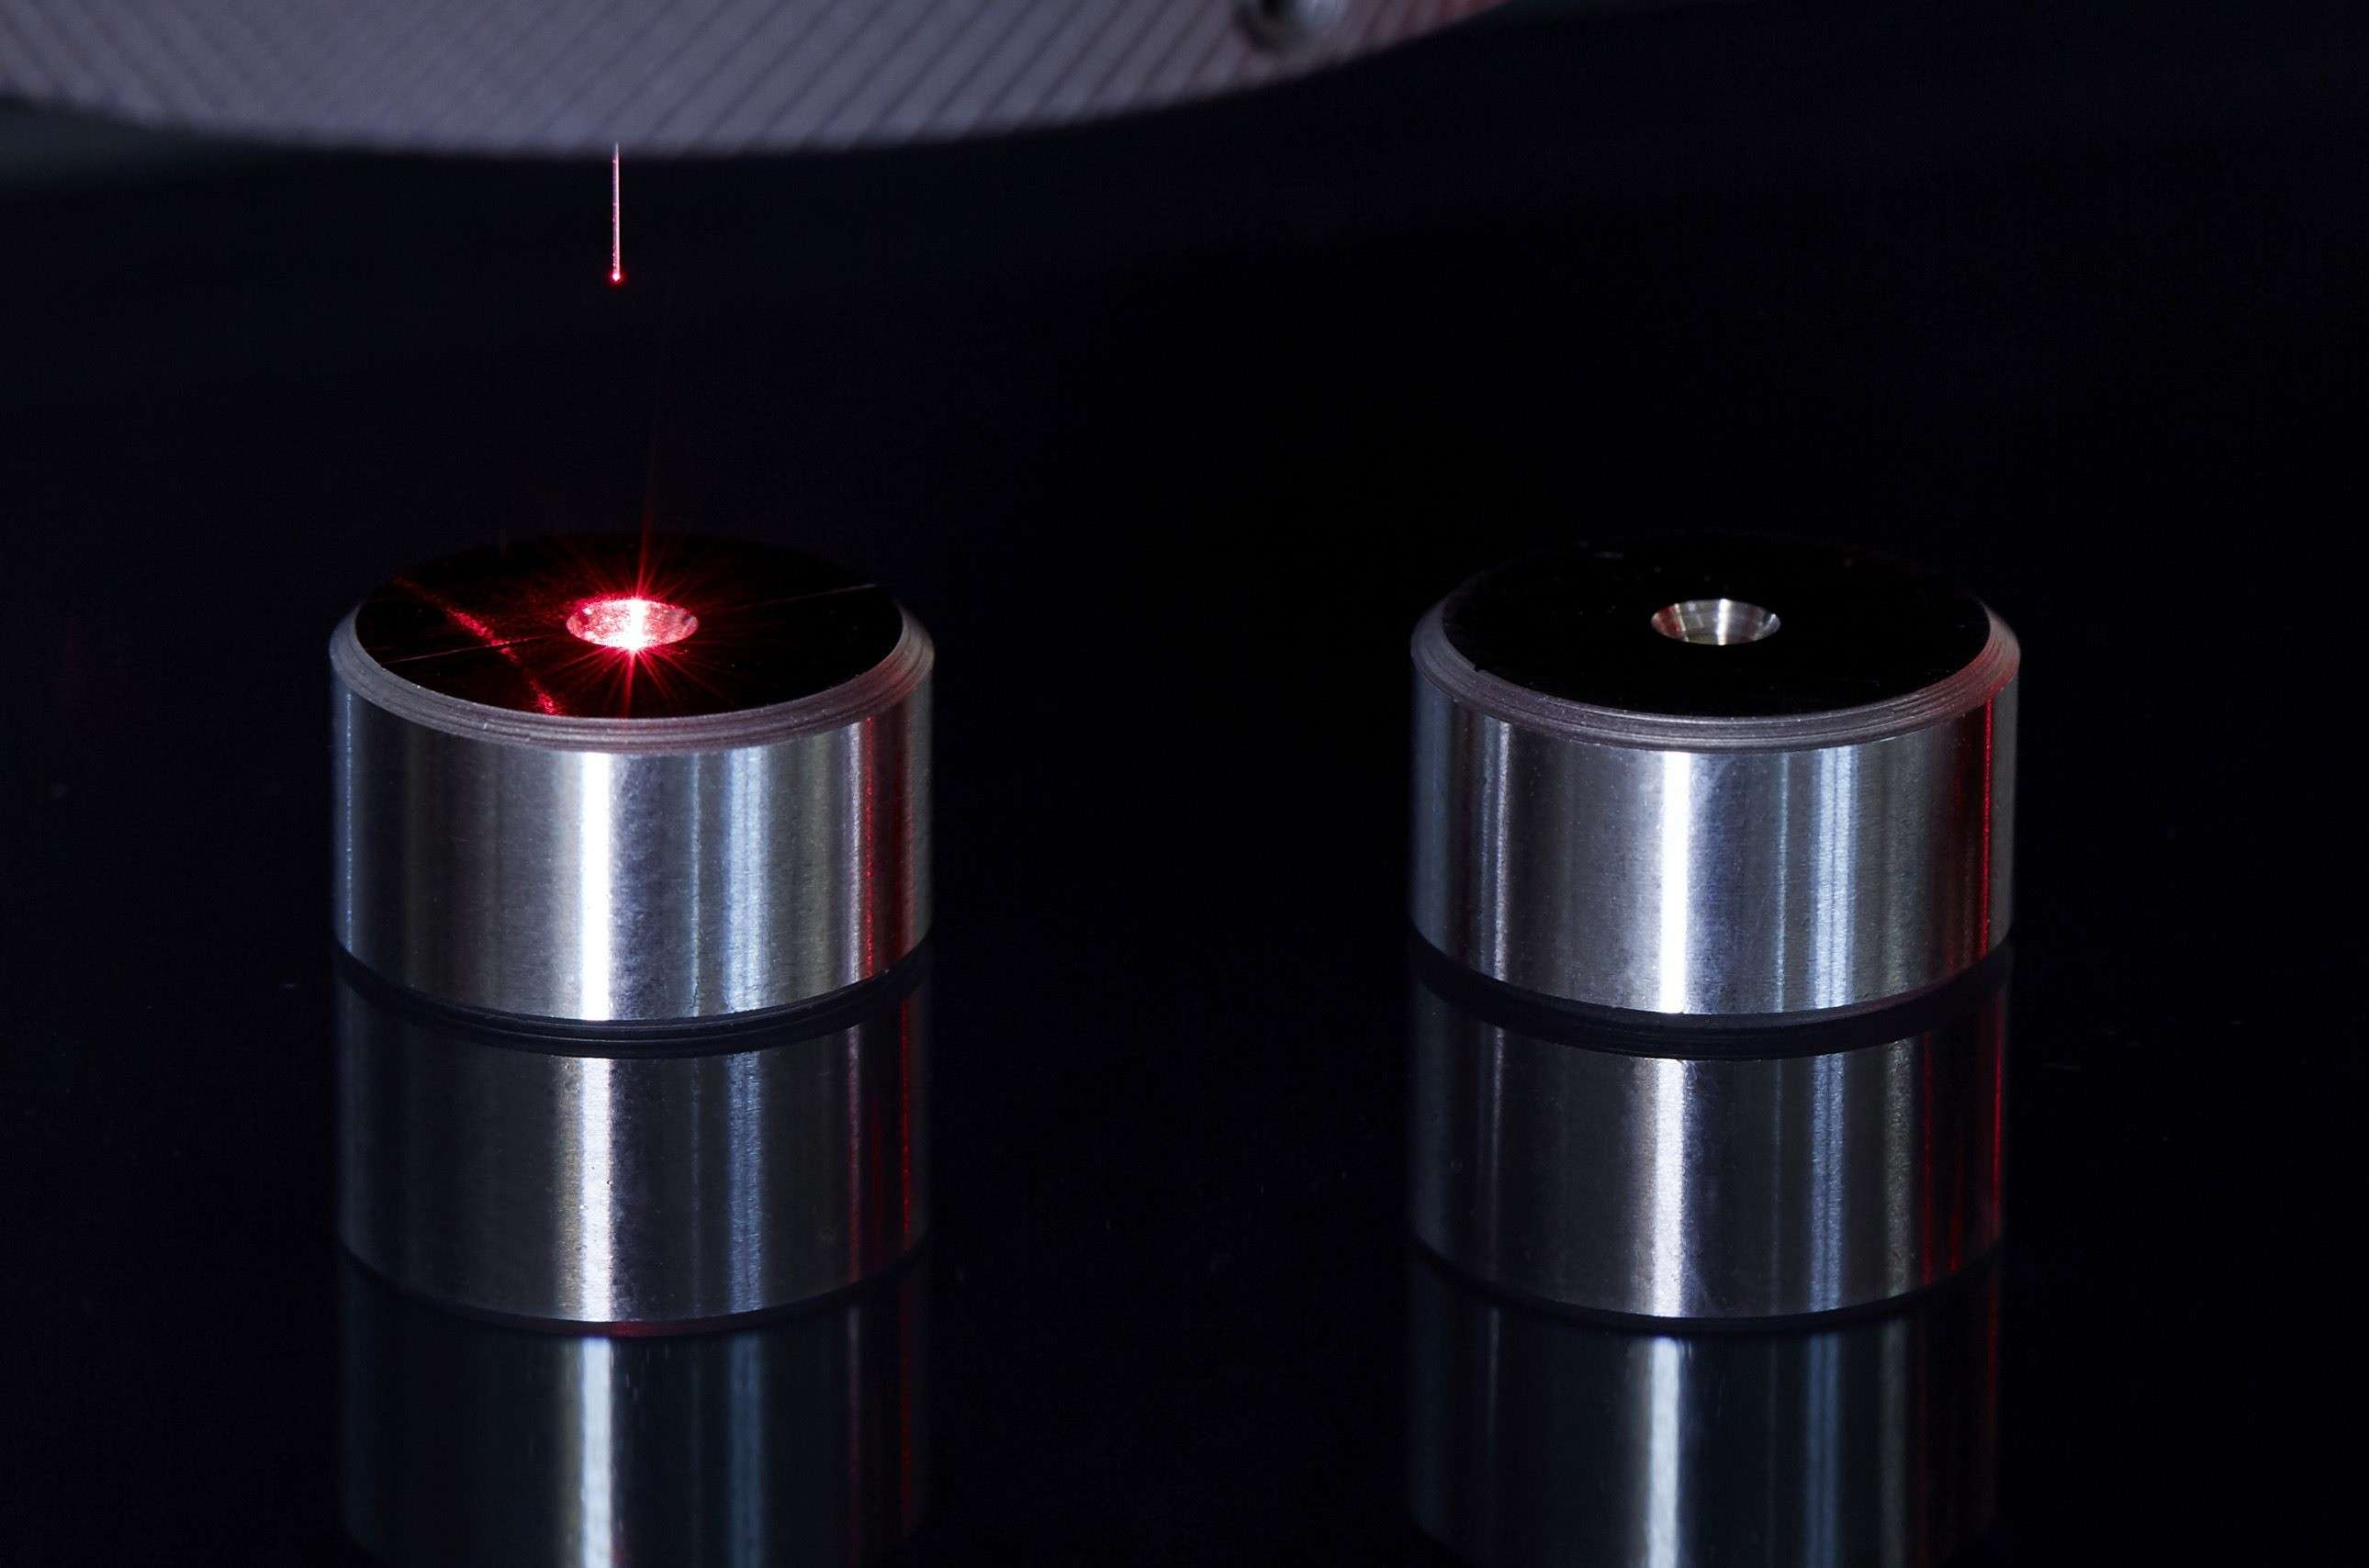 Optical measurement on two profile gauges